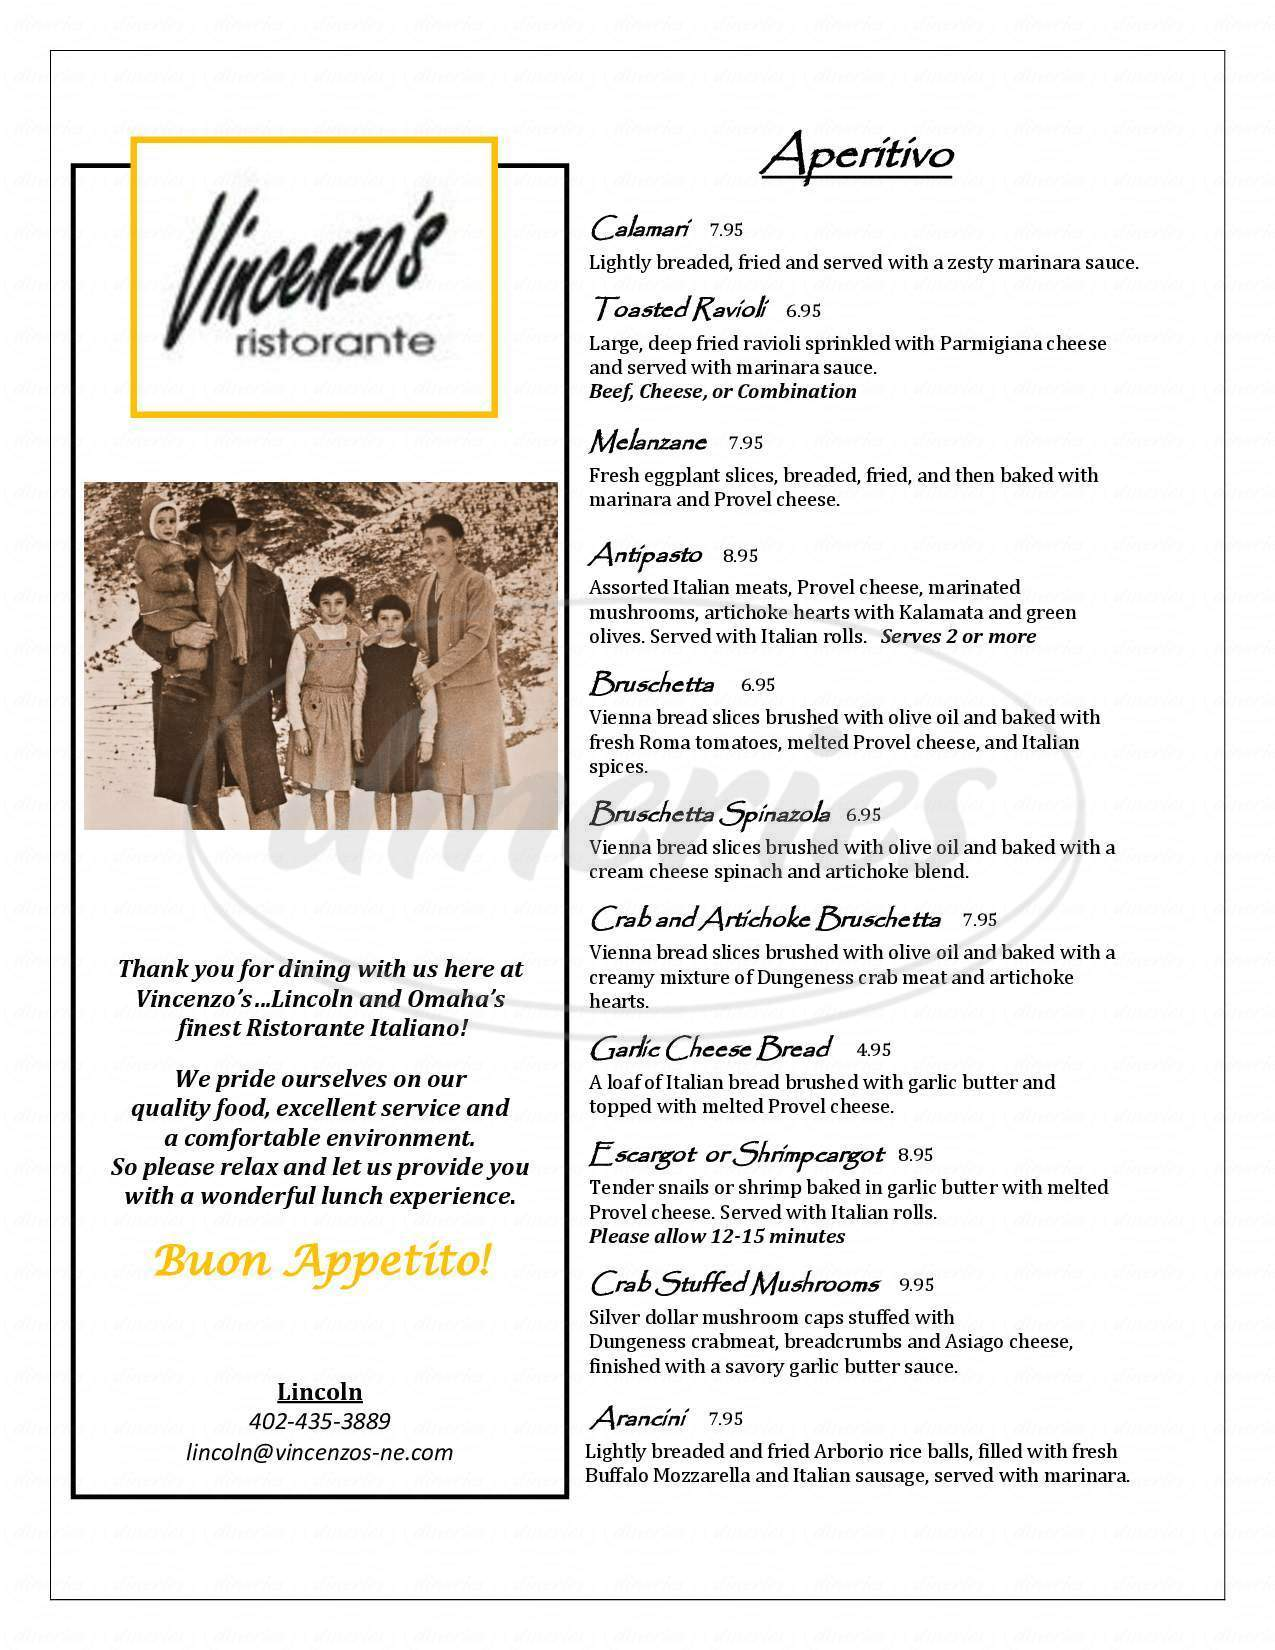 menu for Vincenzo's Ristorante